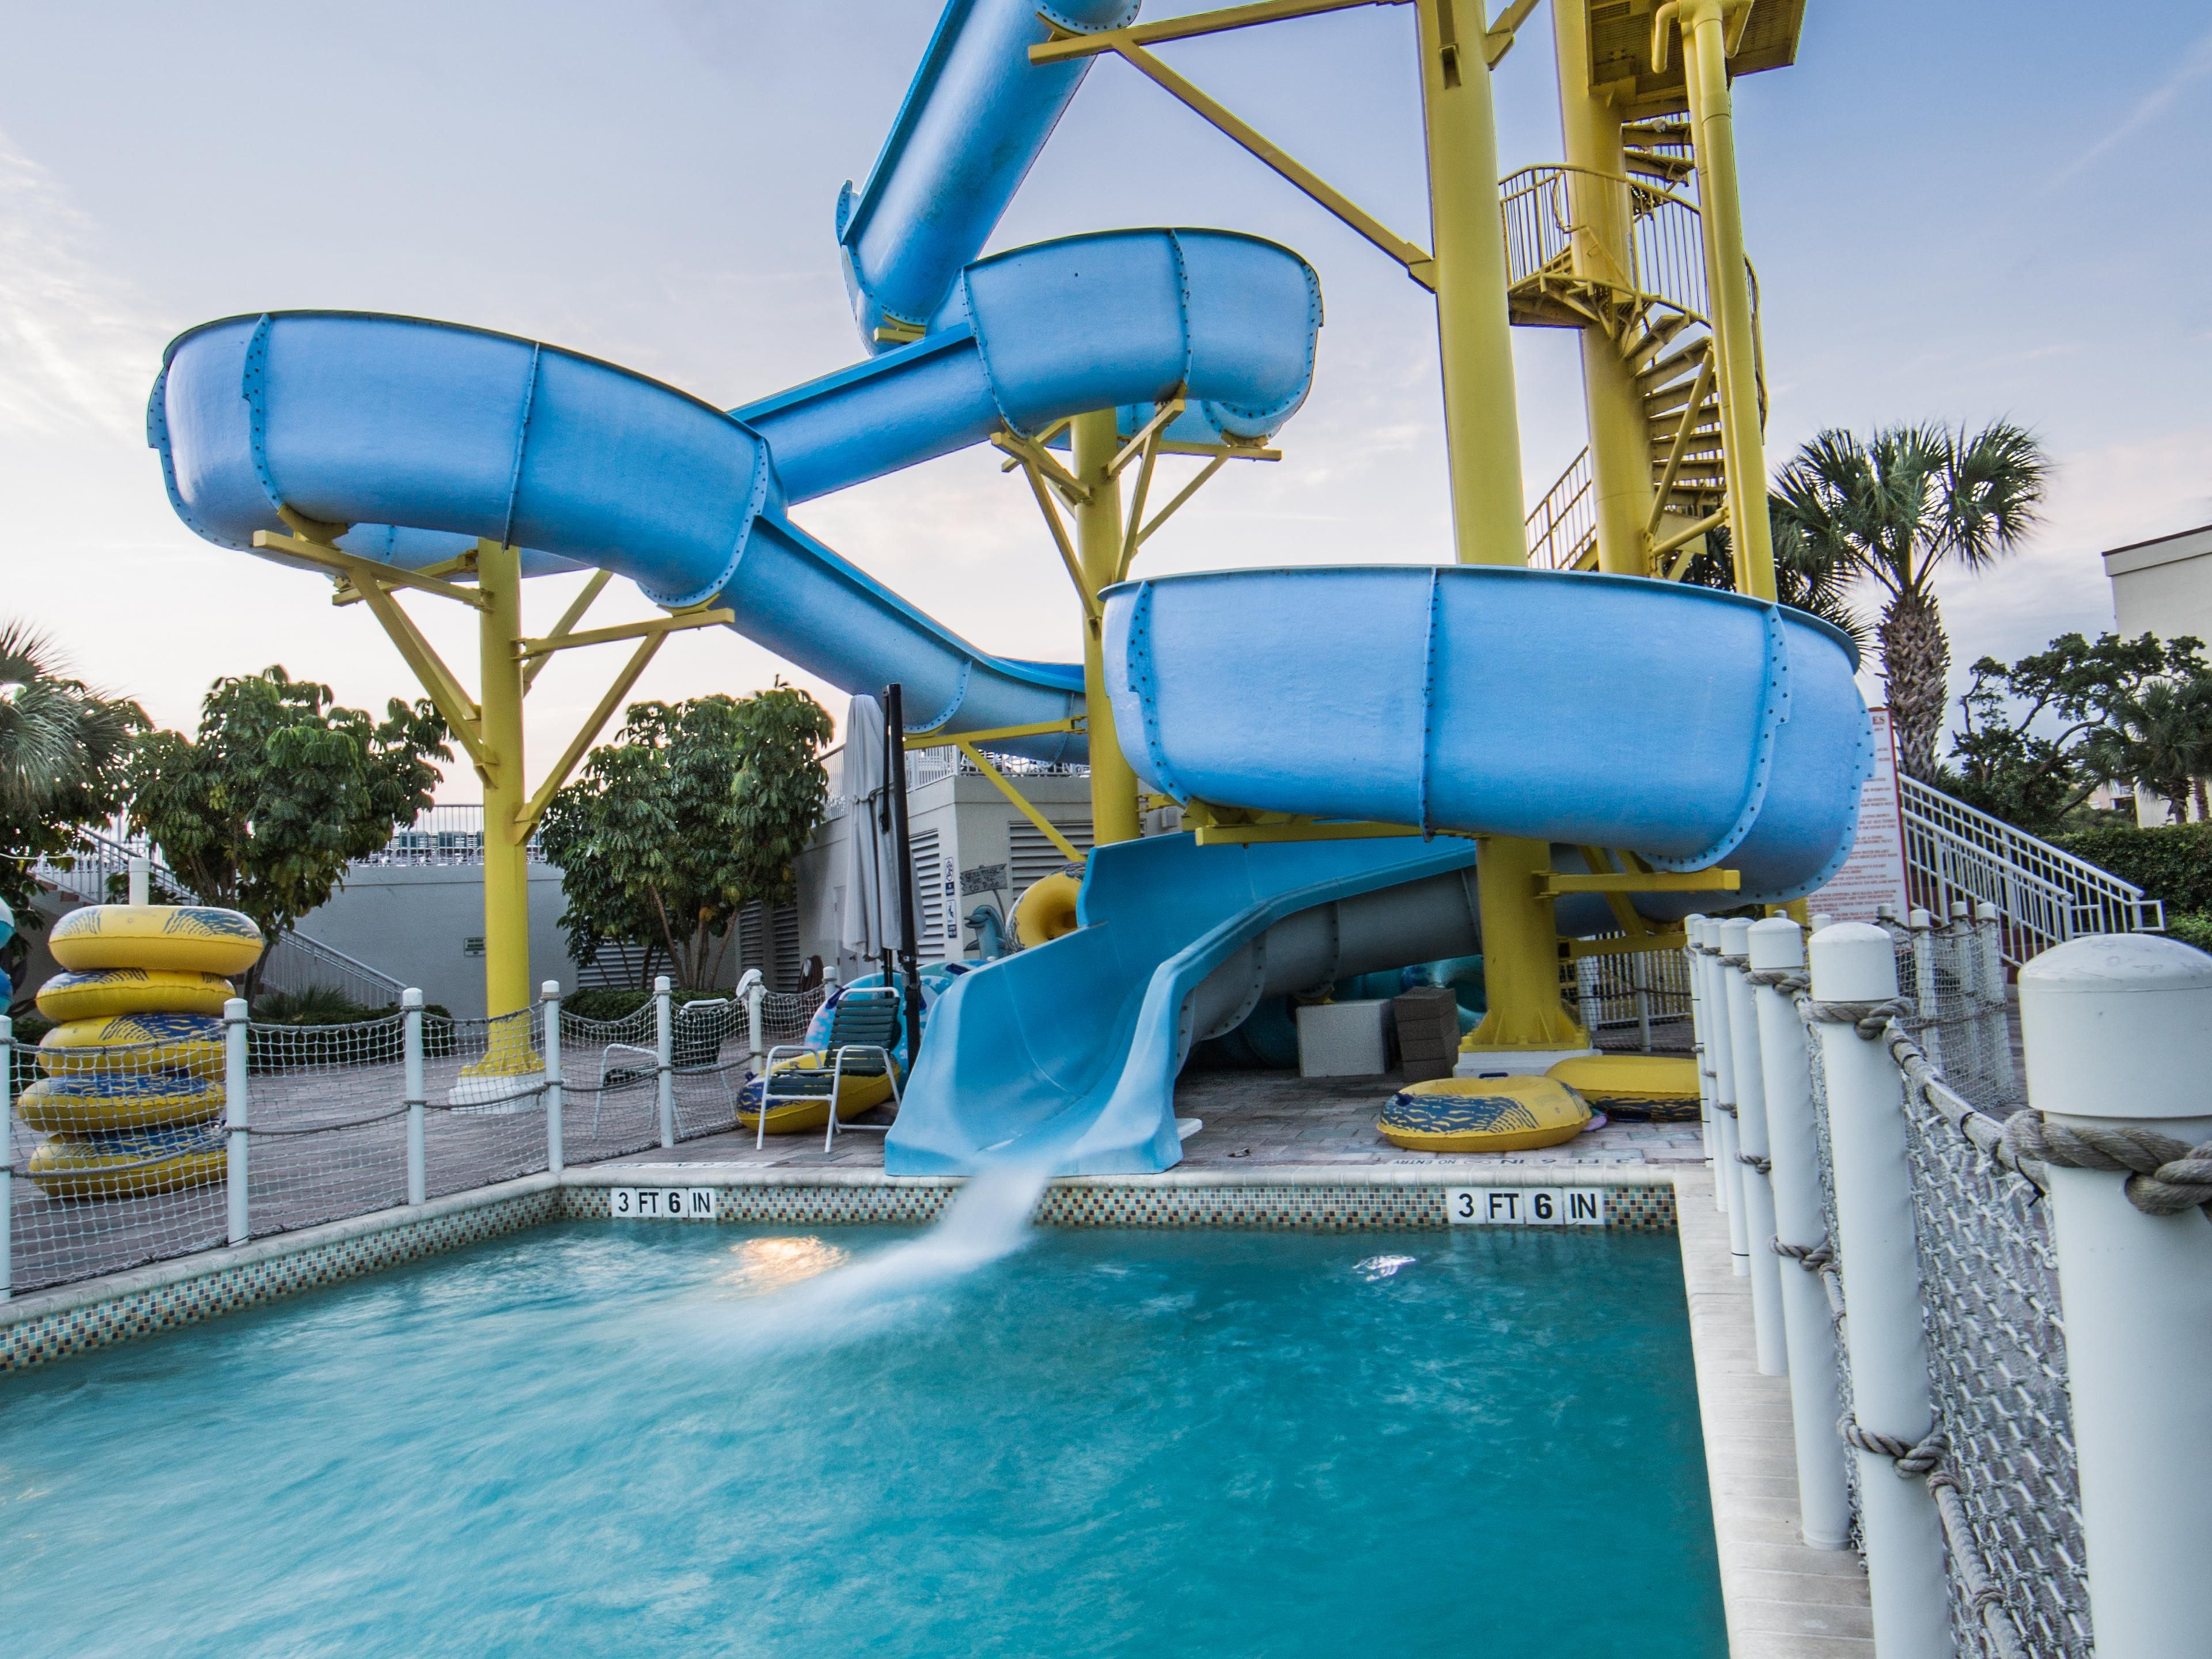 Enjoy racing down the 4-story waterslide at the resort